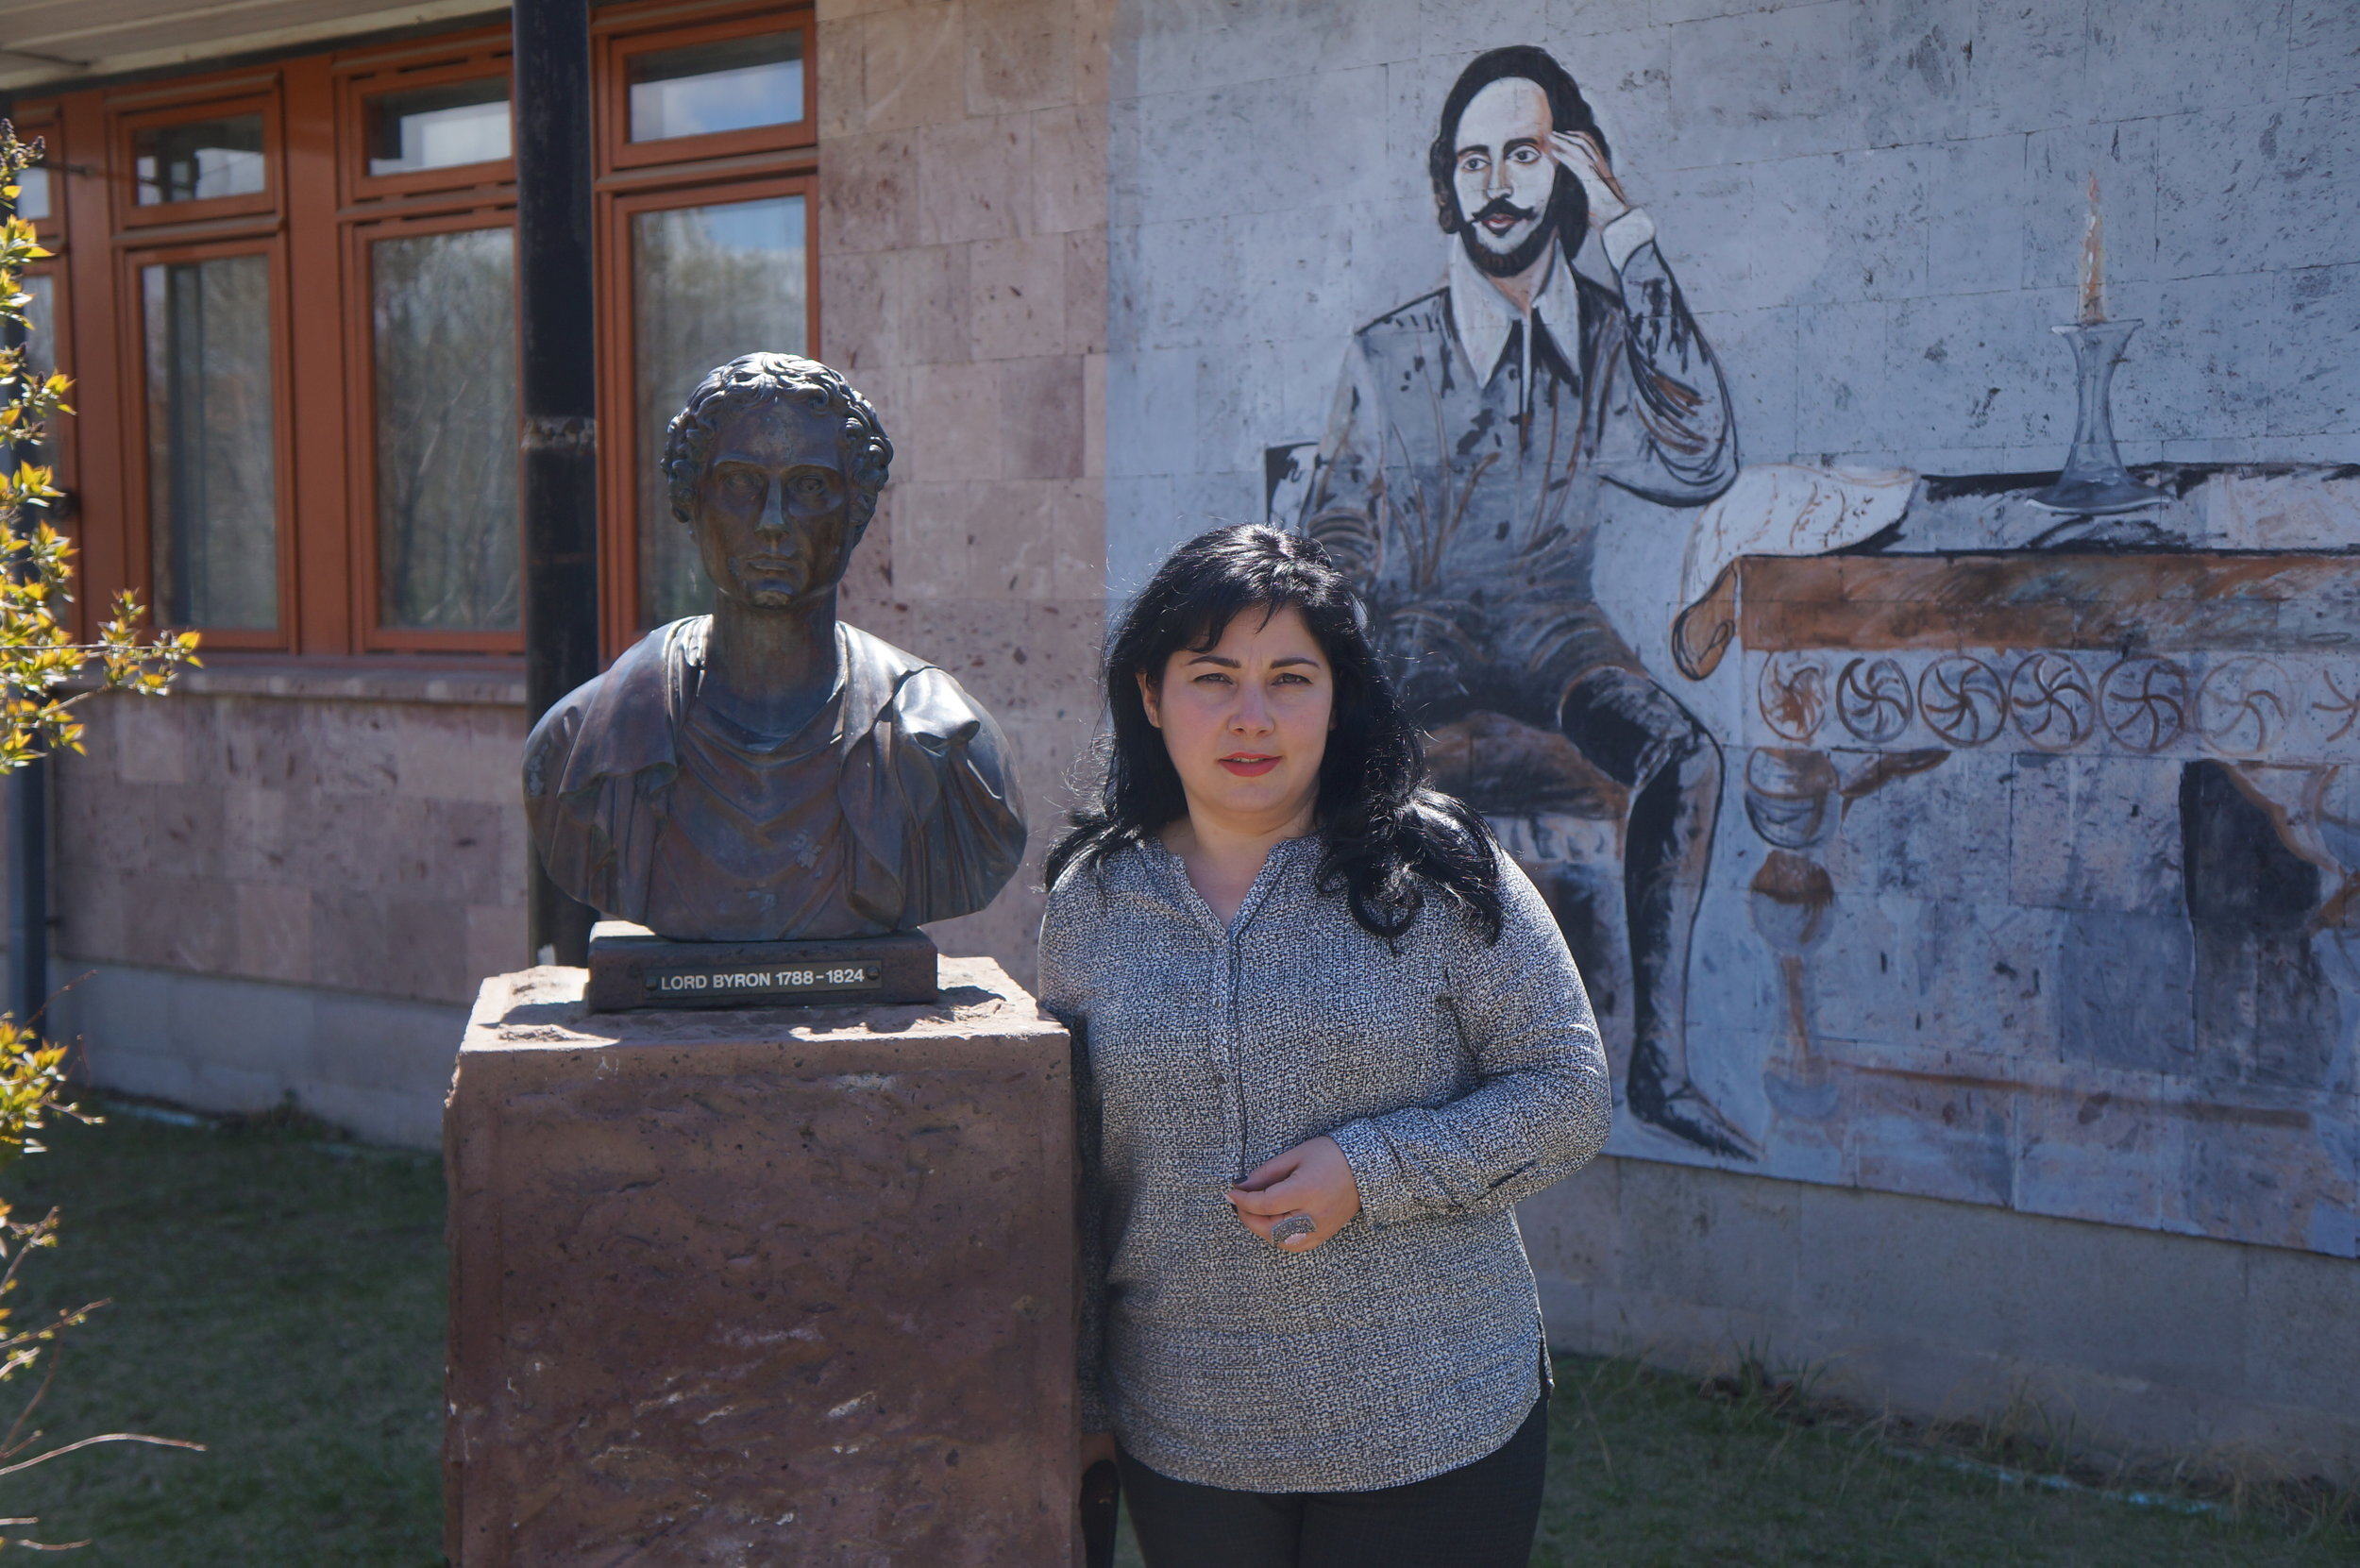 Ohanna Avetisyan - The story of how a young girl lived through an earthquake, met Margaret Thatcher, and became one of Armenia's brightest teachers.